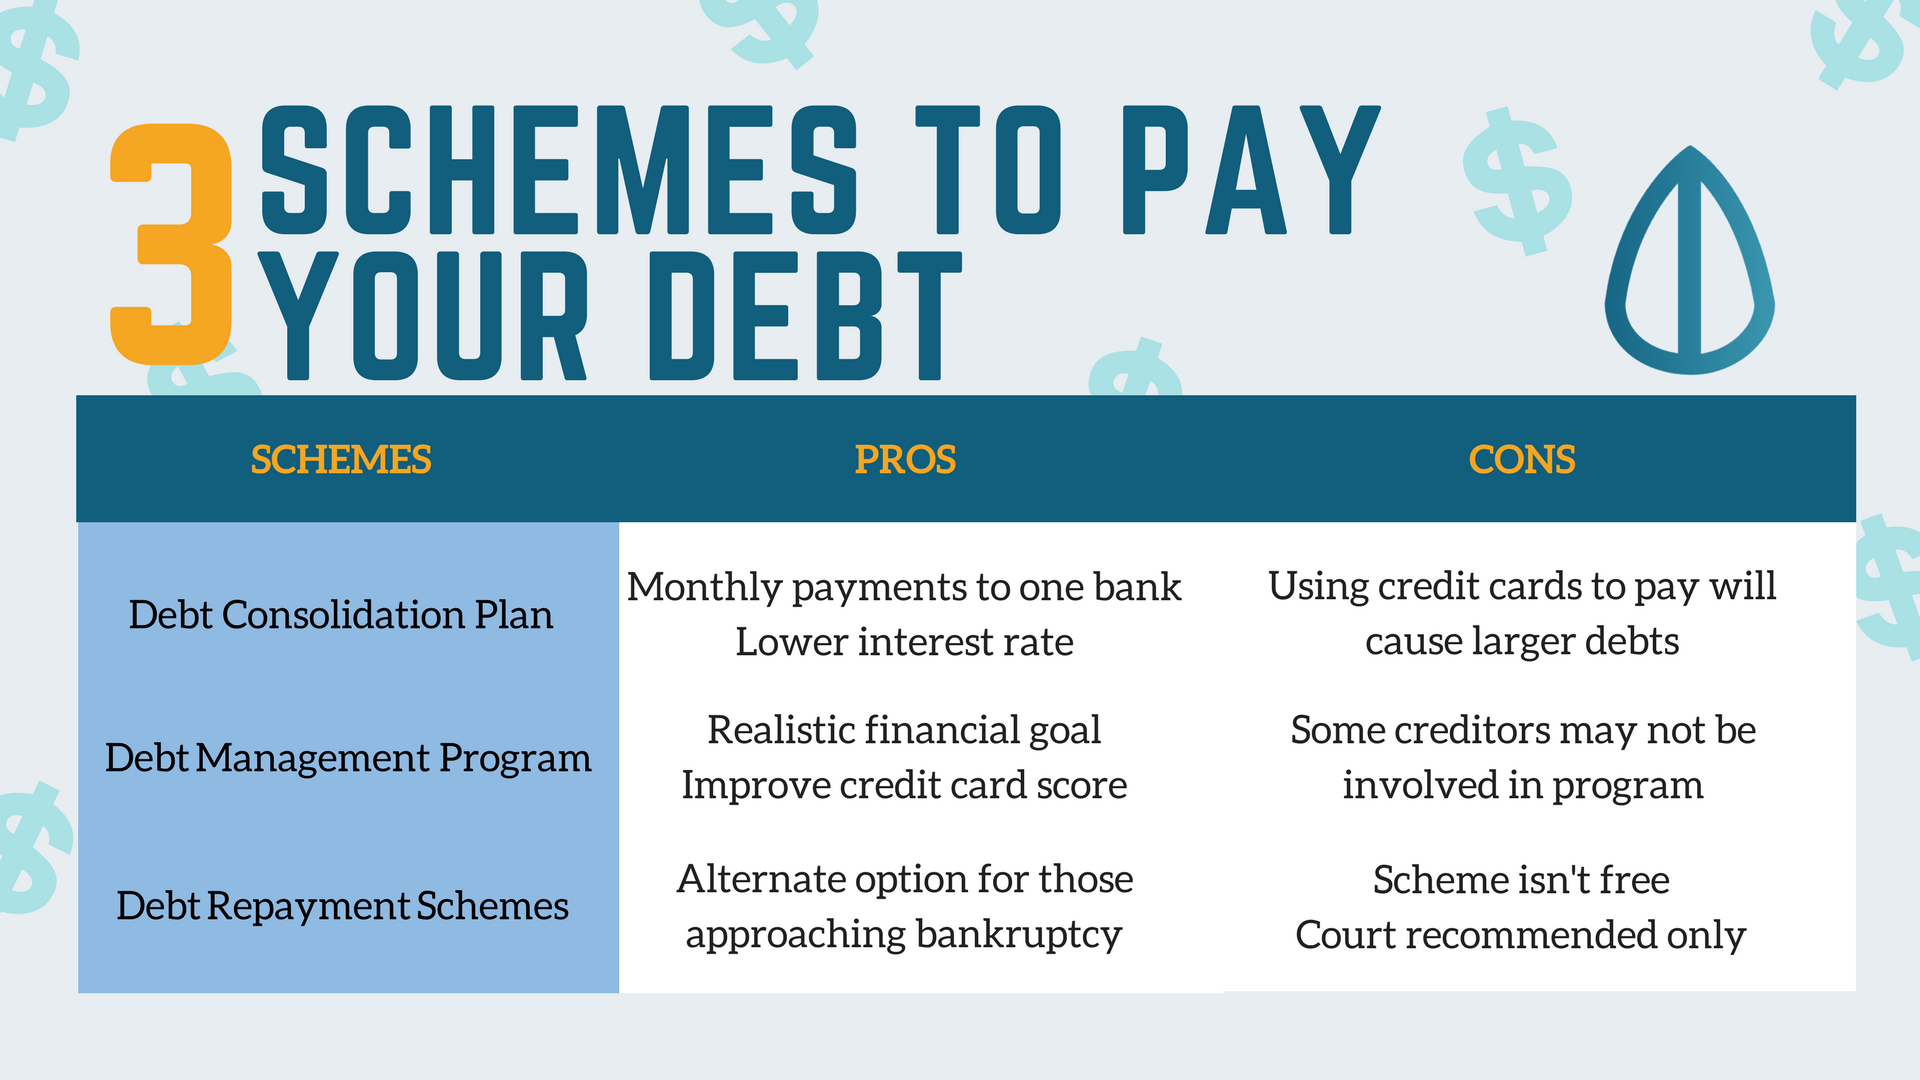 3 schemes to pay off debt